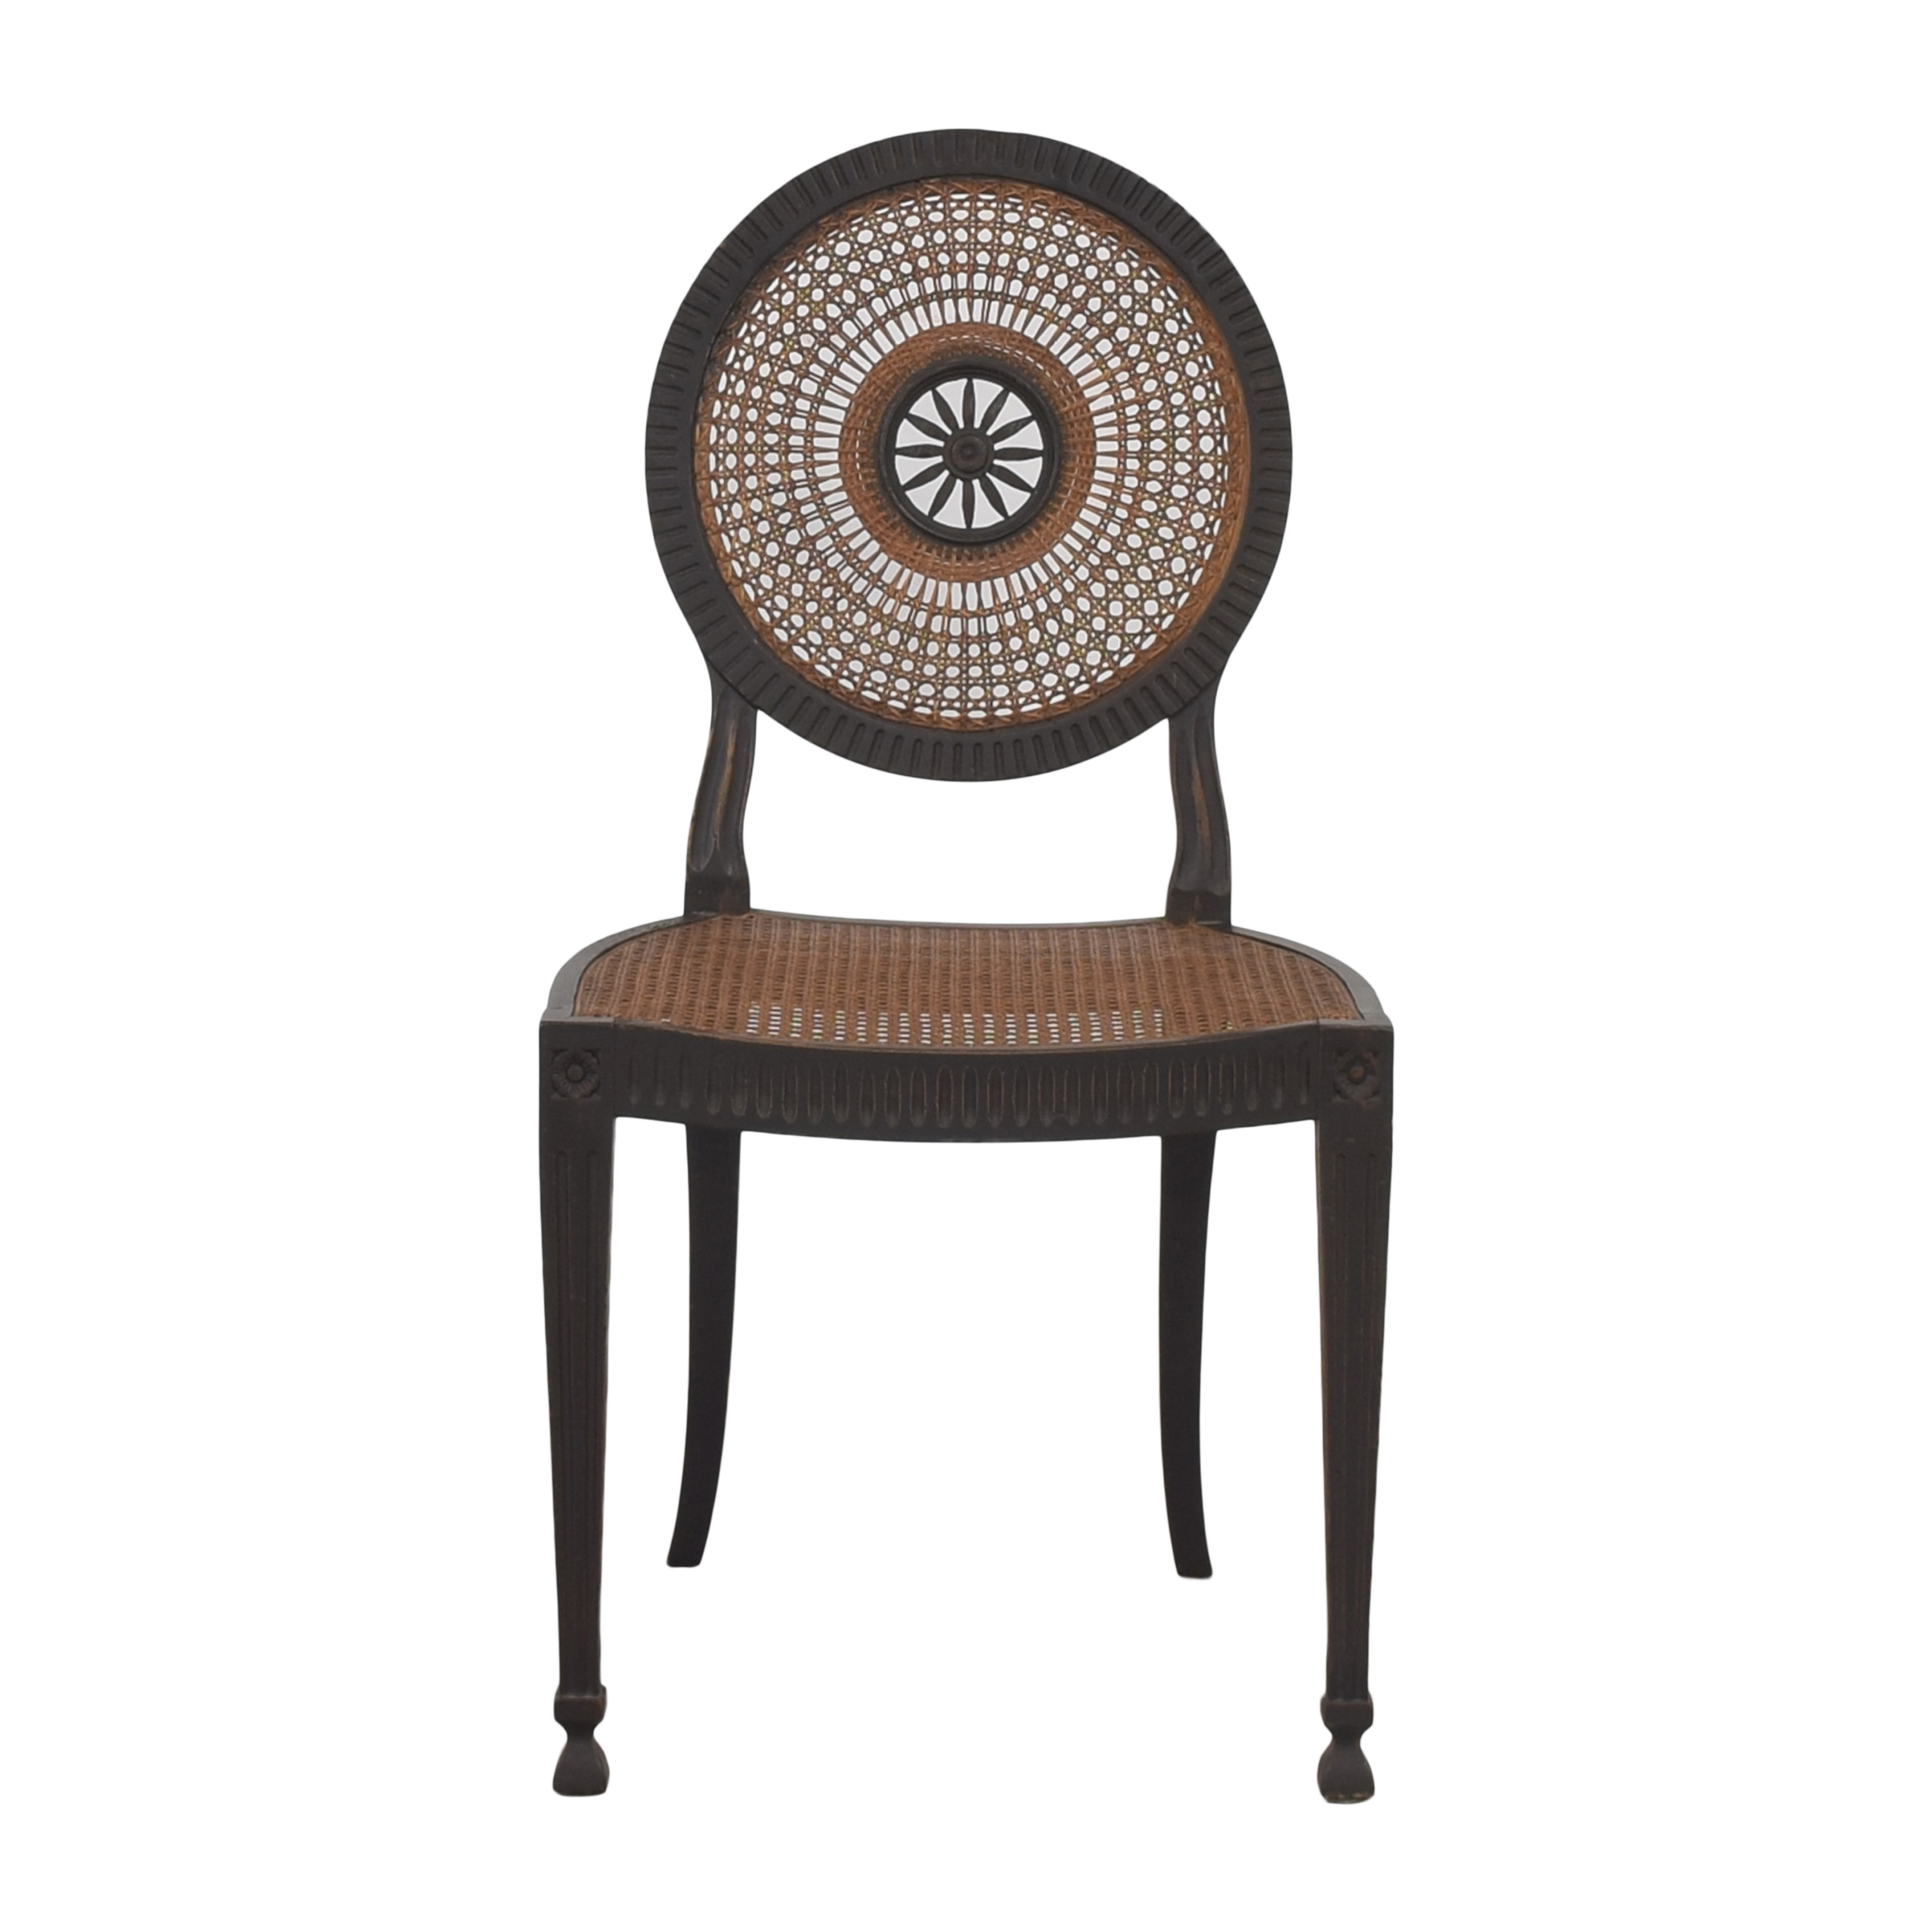 Italian Decorative Cane Chair / Dining Chairs